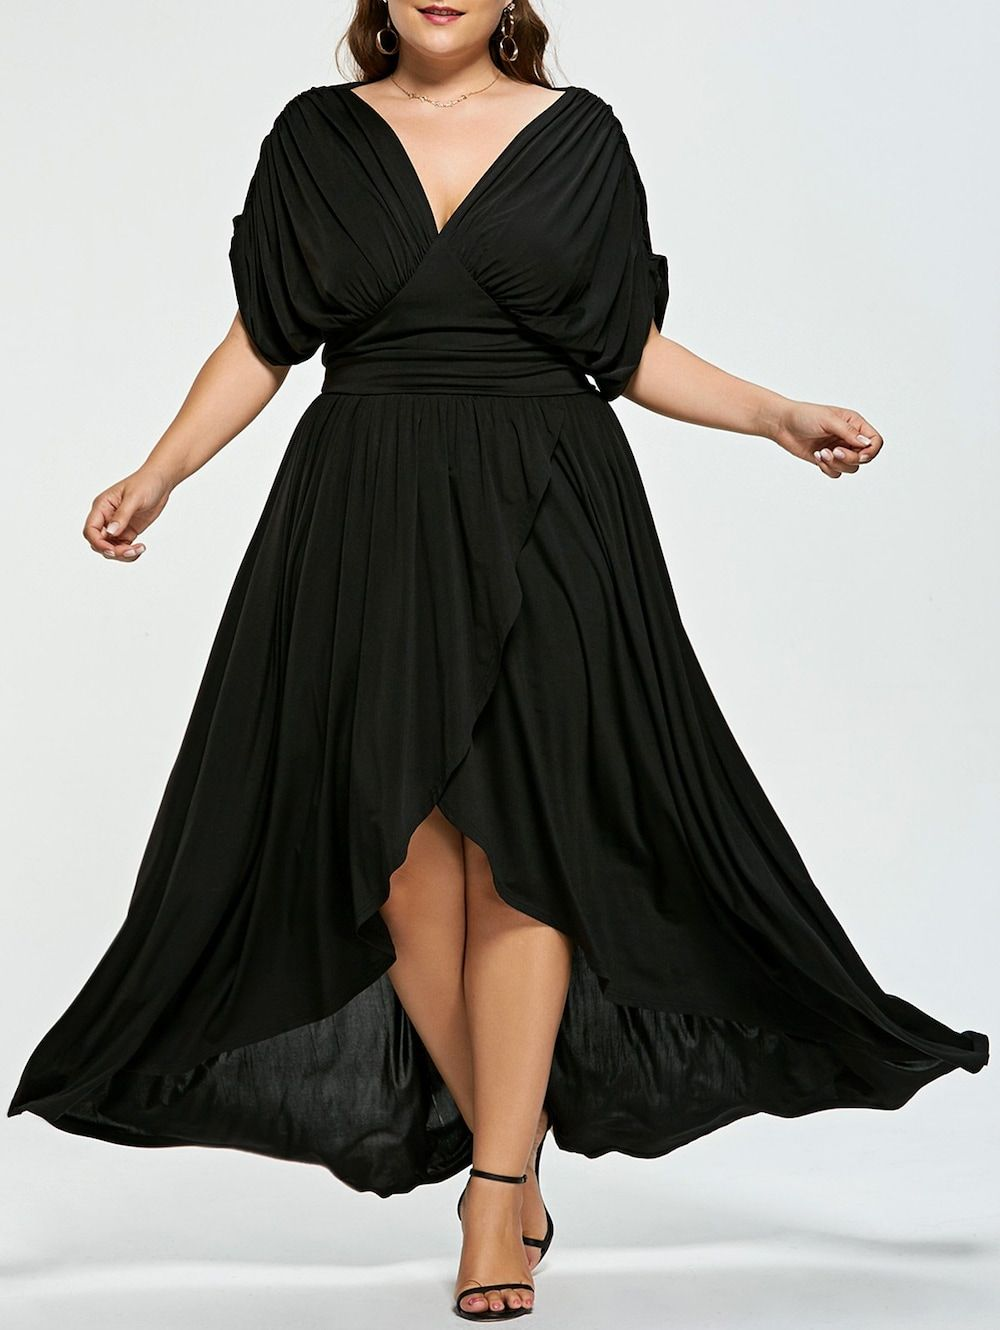 Empire Wasit Plus Size High Low Prom Dress in 2020 | High ...